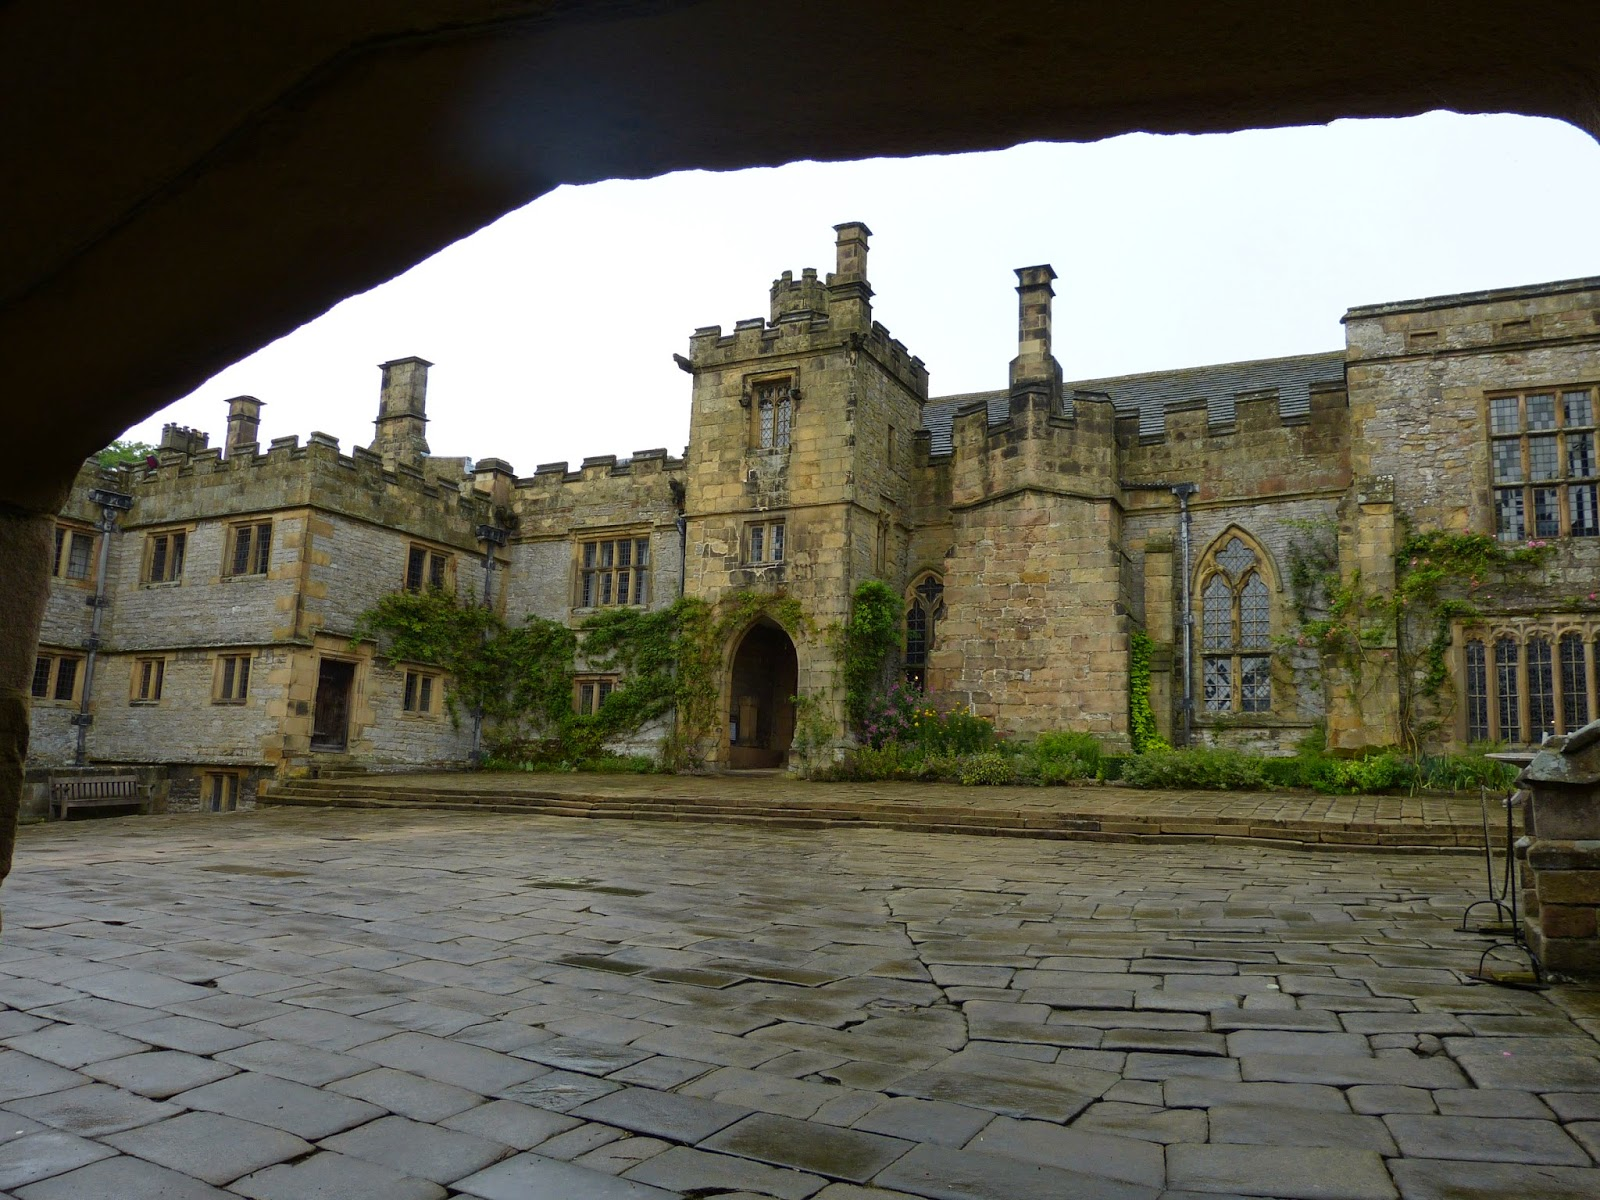 View of Haddon Hall from outside The Chapel